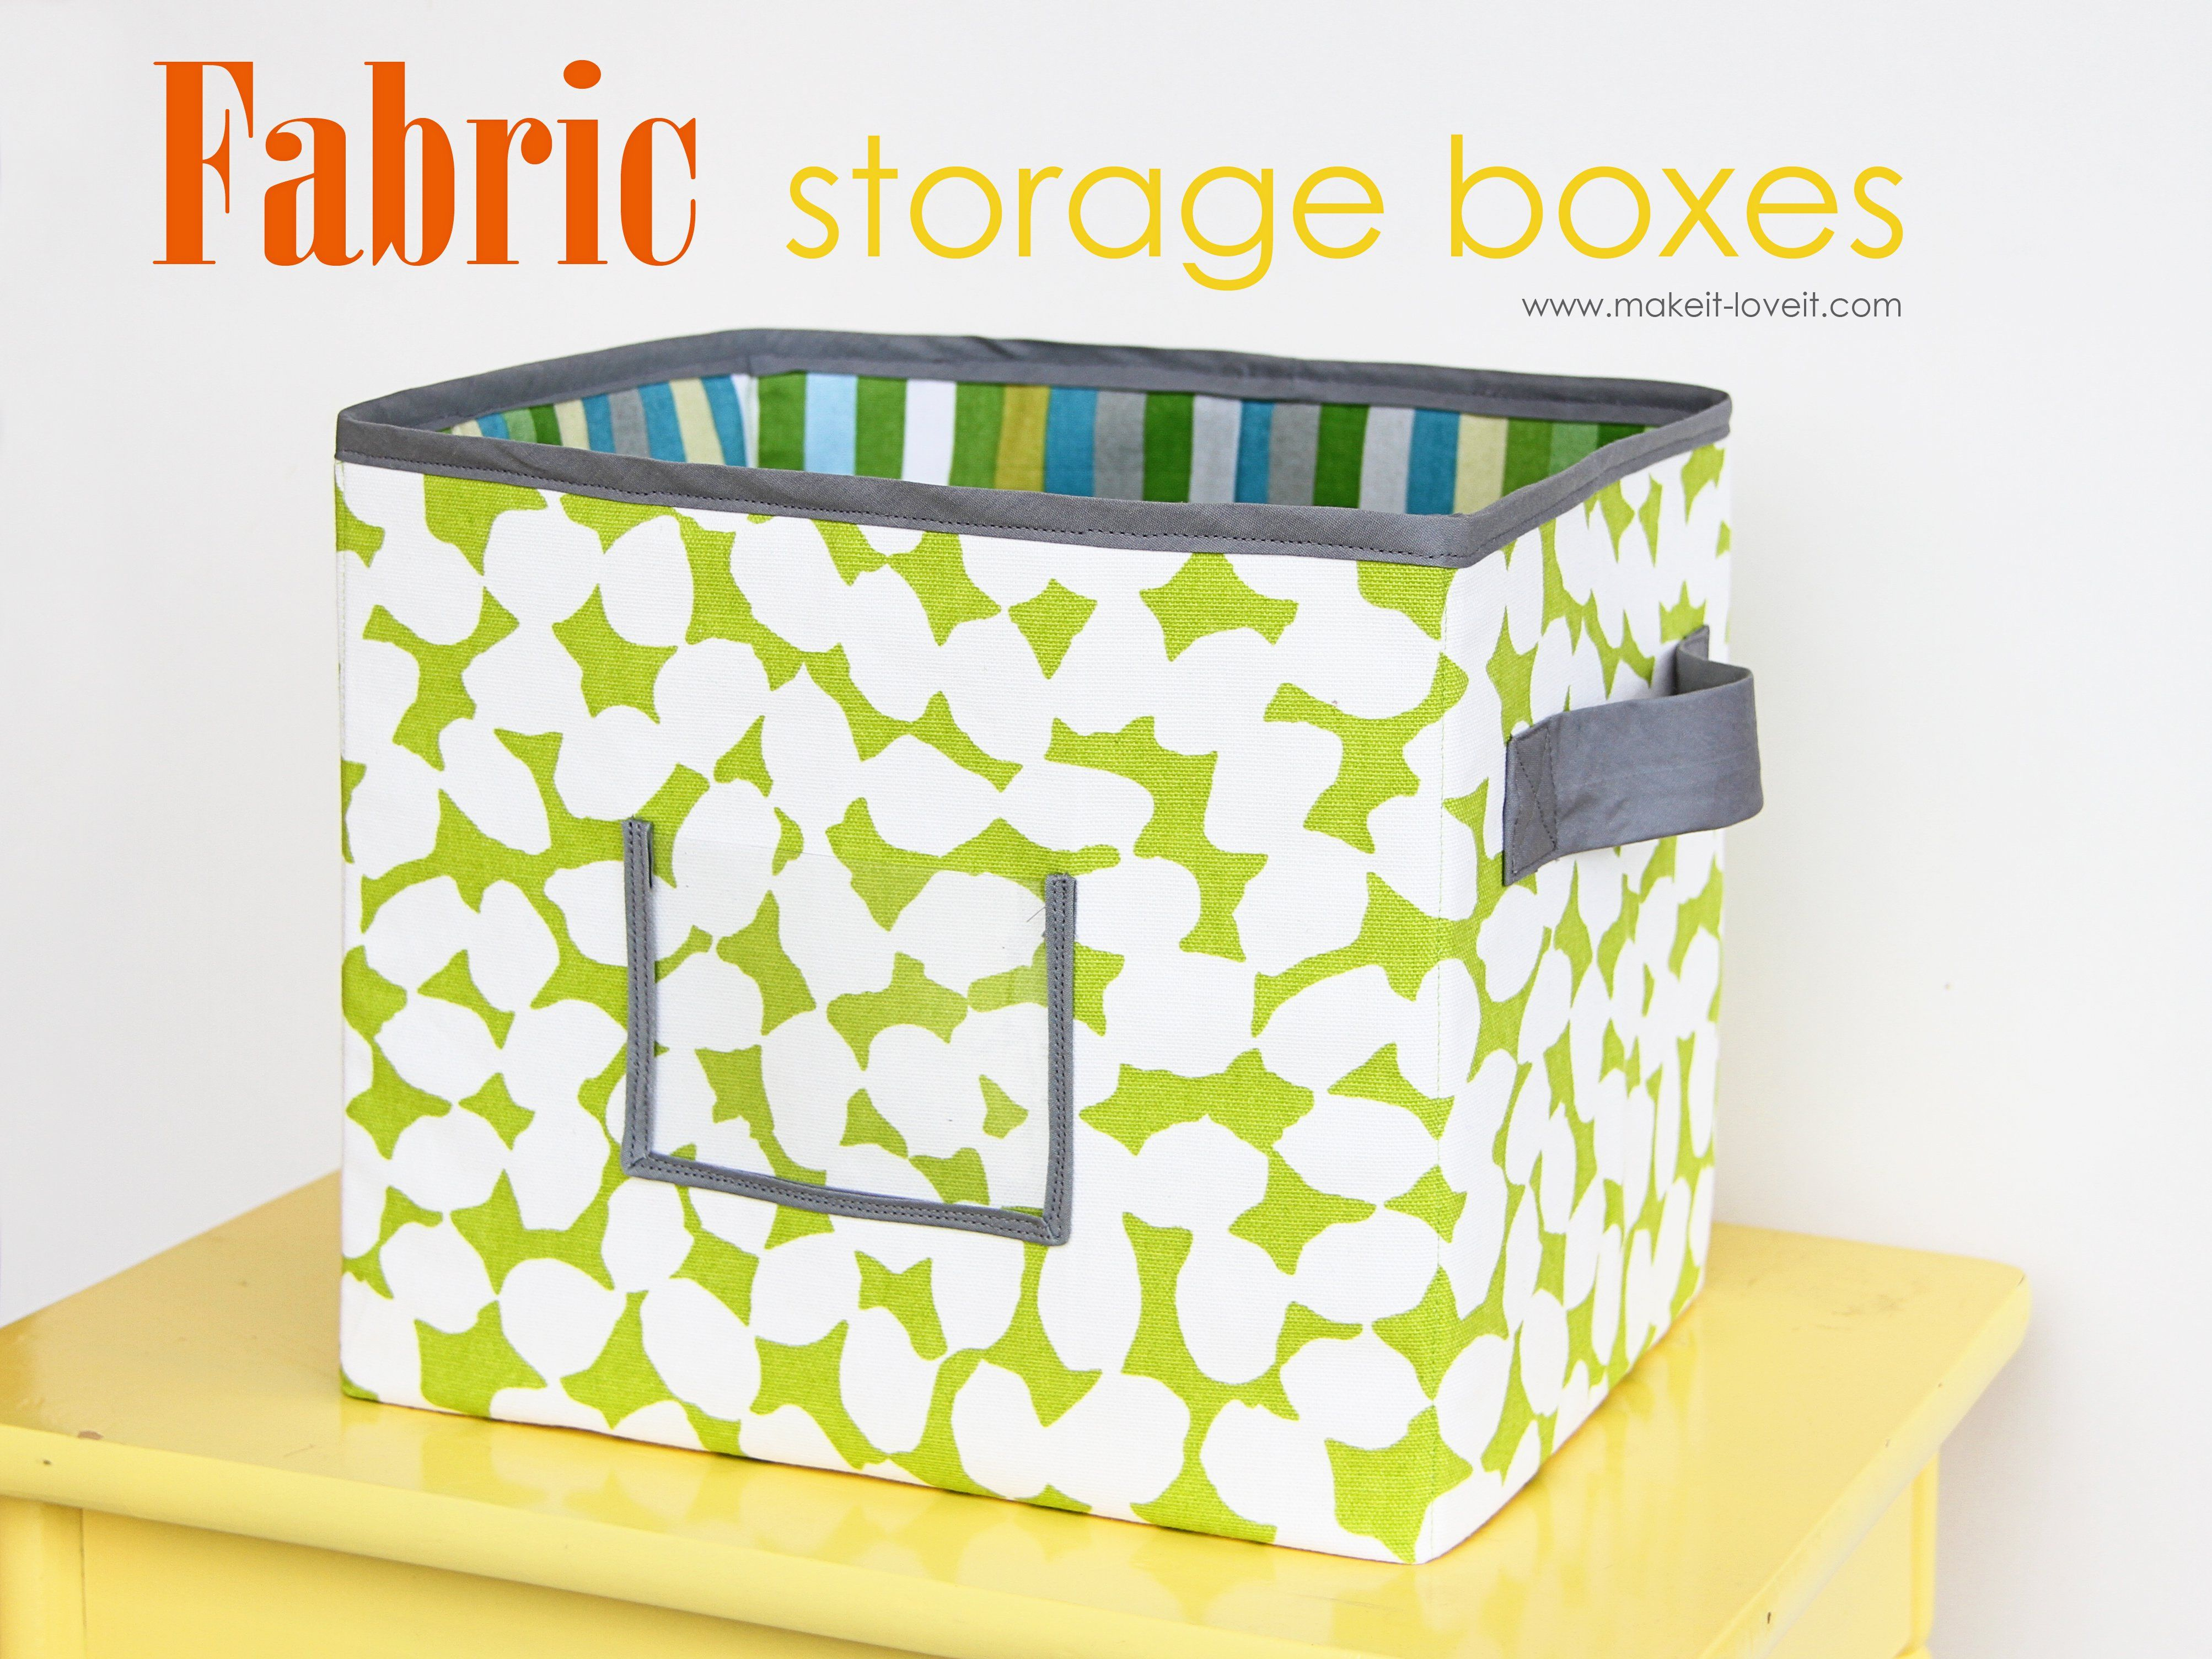 Decorative Fabric Boxes How To Make Your Own Fabric Storage Boxesfor Under The Couch